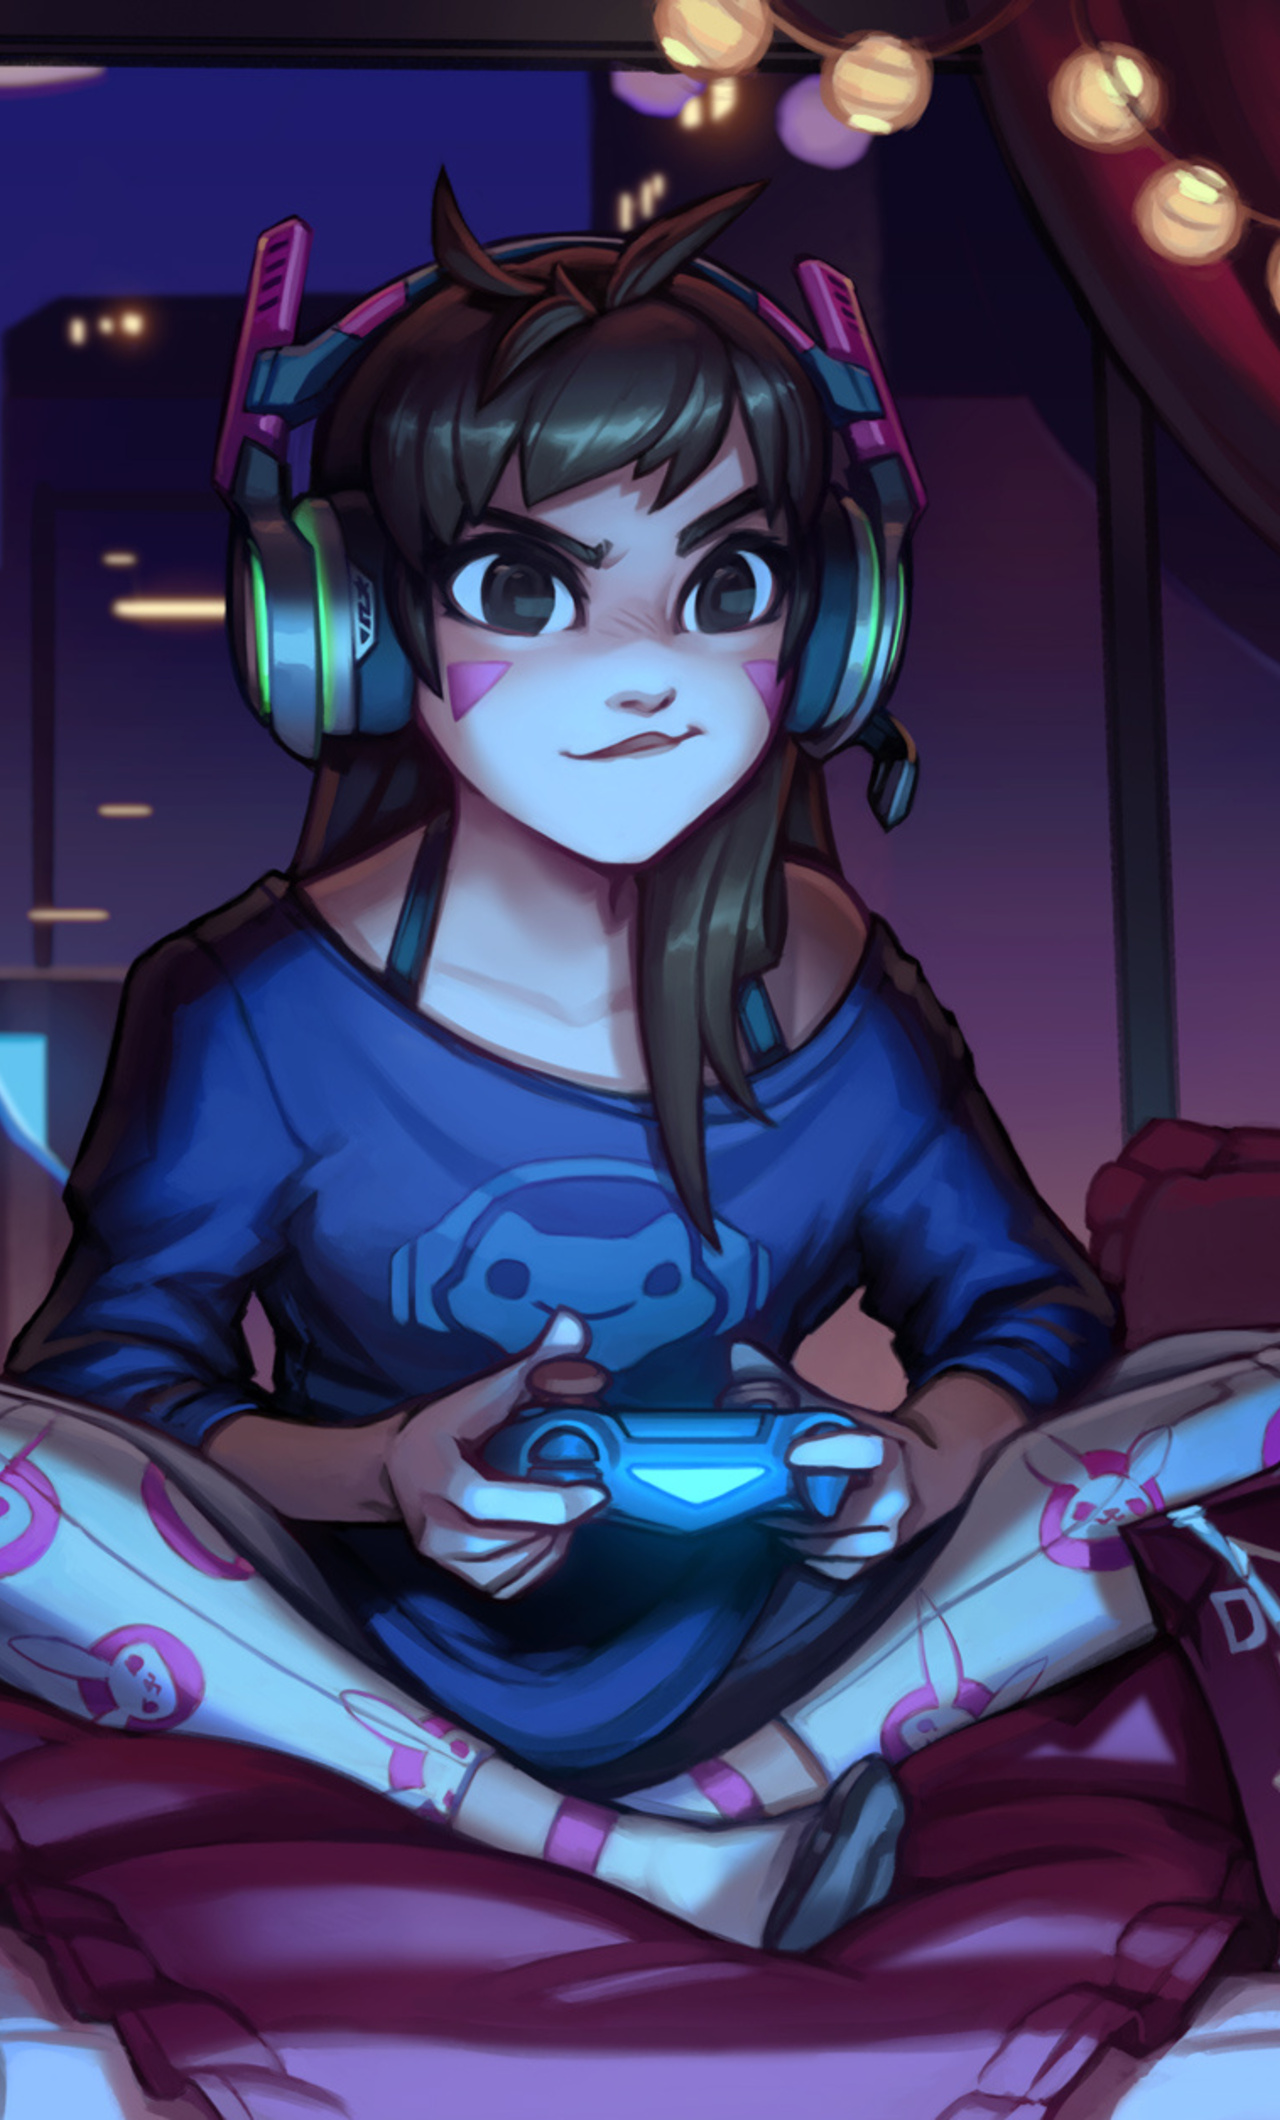 1280x2120 Dva Overwatch Cute Artwork Iphone 6 Hd 4k Wallpapers